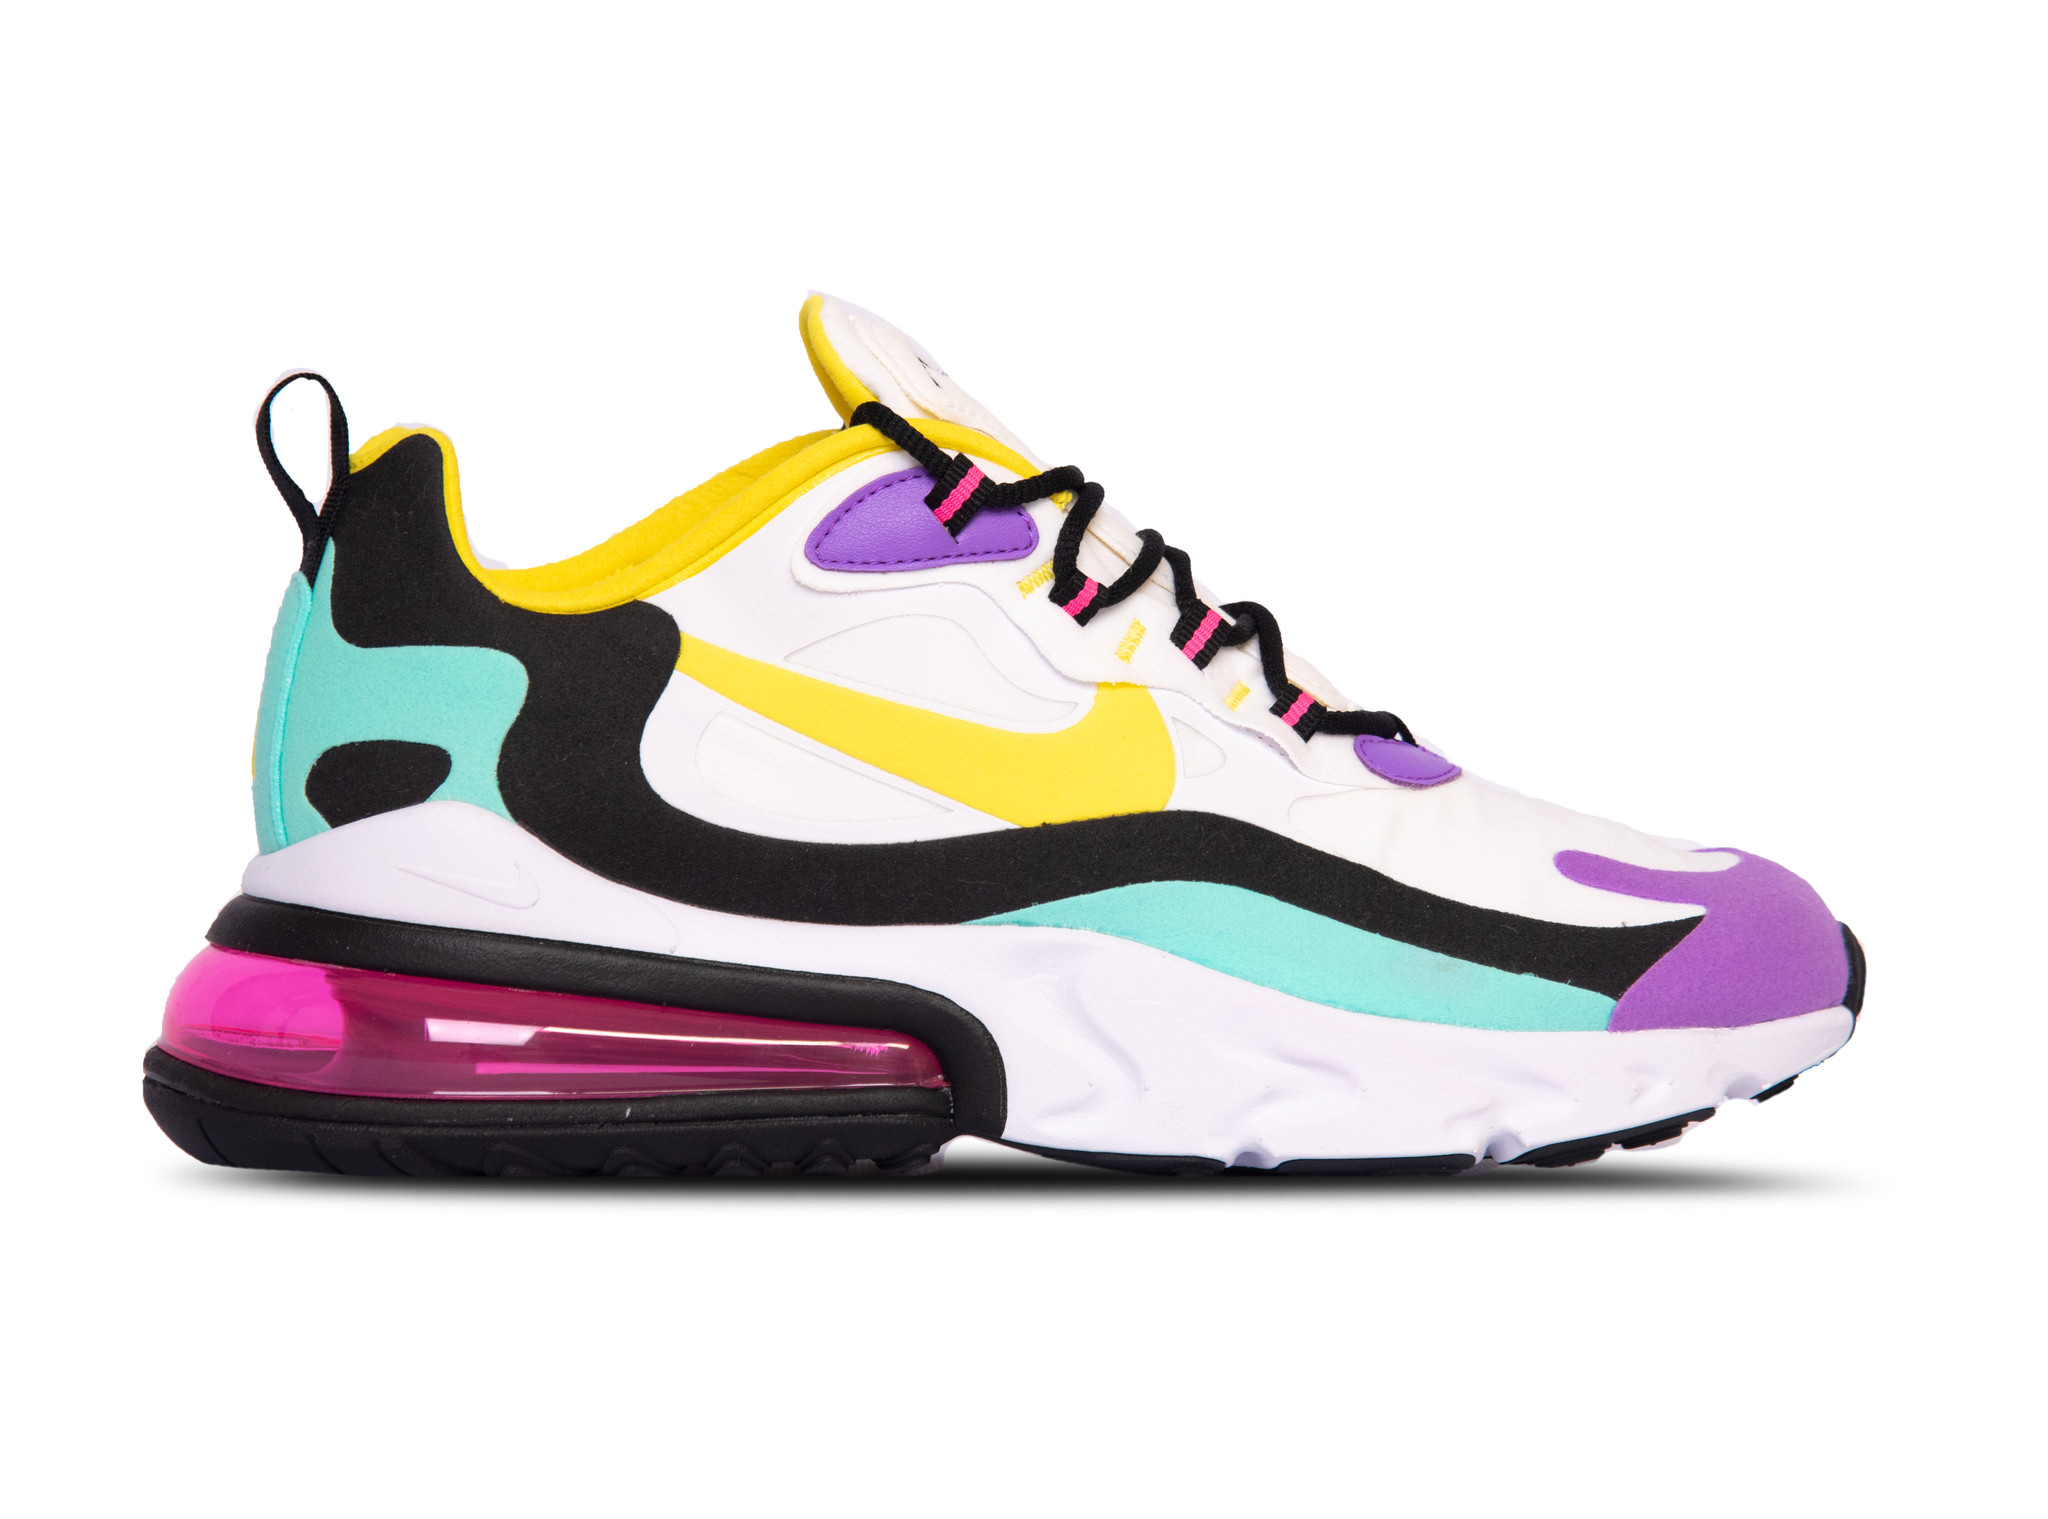 Air Max 270 React White Dynamic Yellow Black Bright Violet